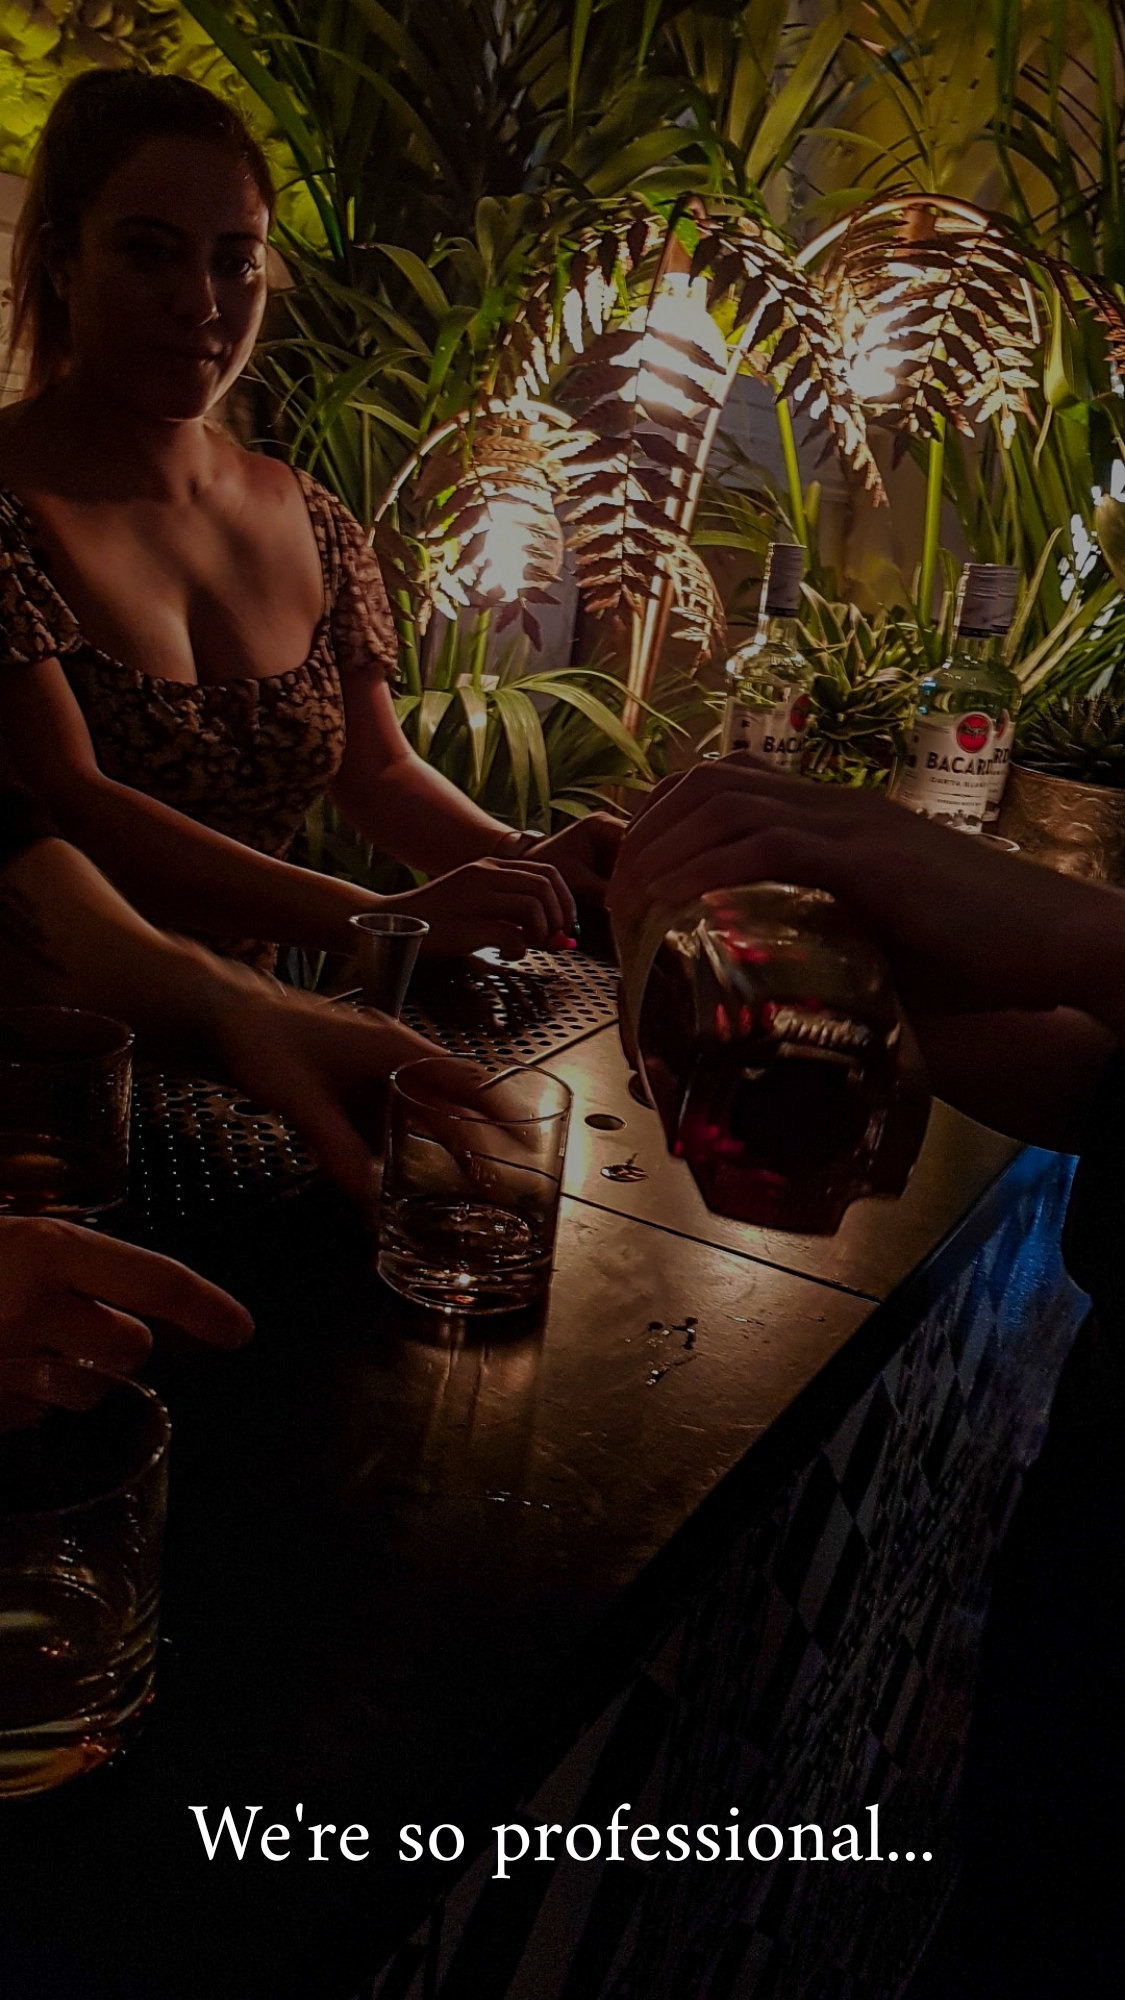 Celebrating the climax of Bacardi rum month with National Rum Day at The London Edition mixology